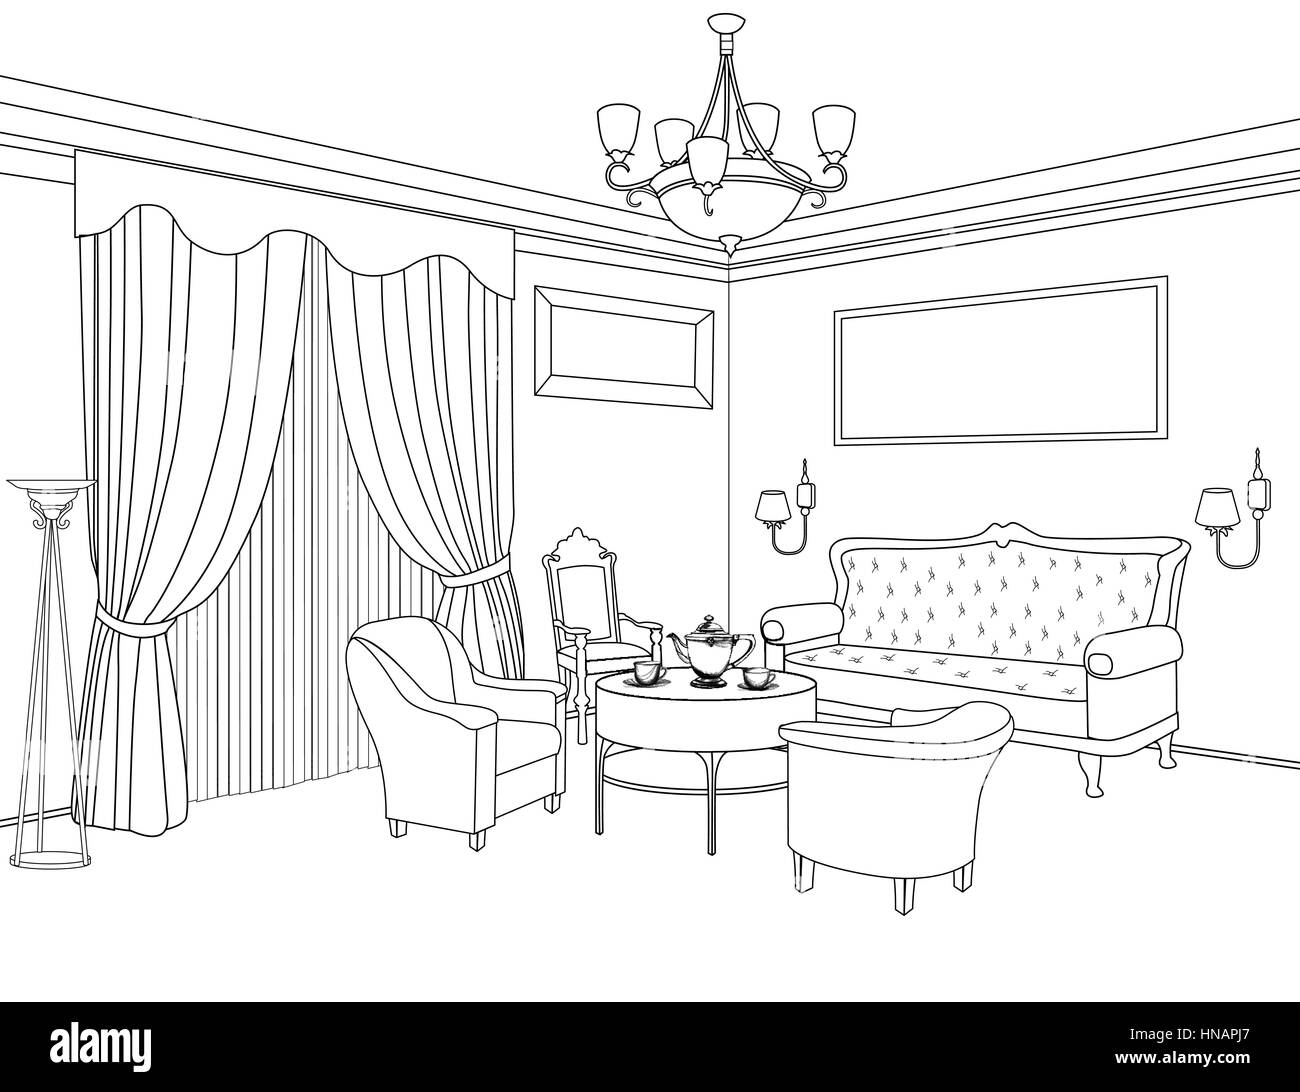 Interior outline sketch furniture blueprint architectural design furniture blueprint architectural design living room malvernweather Image collections